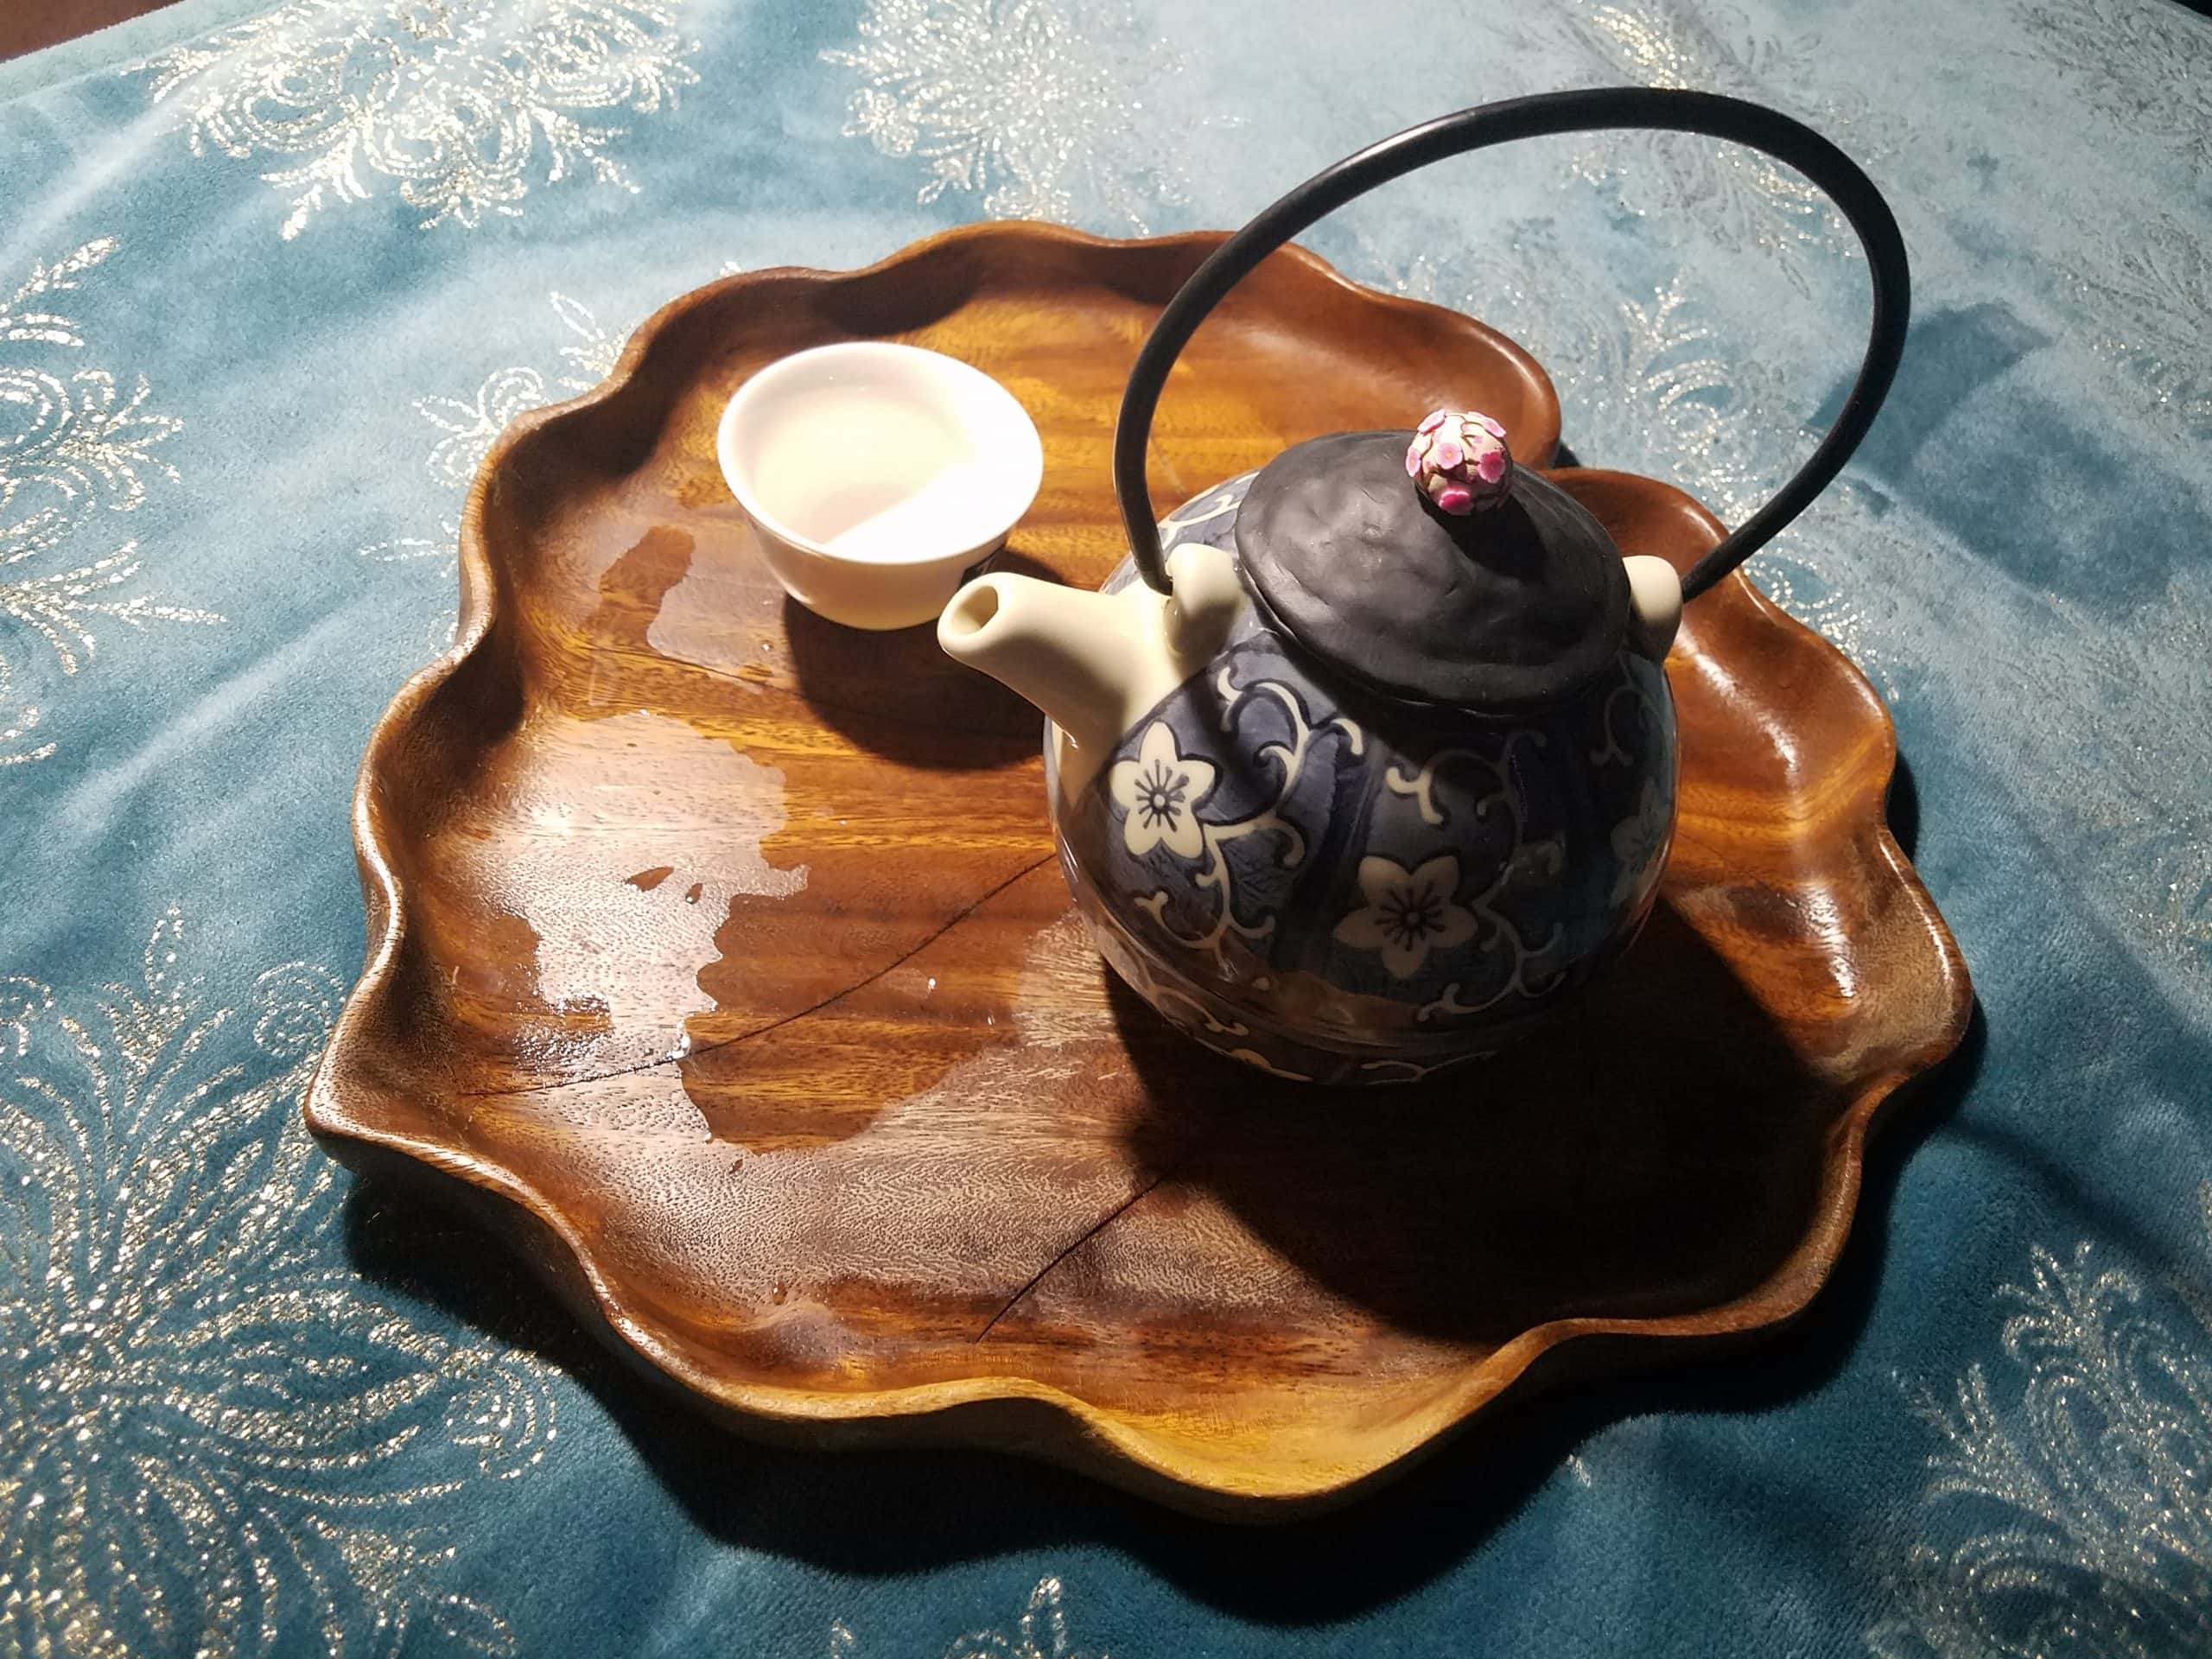 Updating an Old Teapot and Telephone Tea Date - A photo of a teapot and teacup on a wooden tray